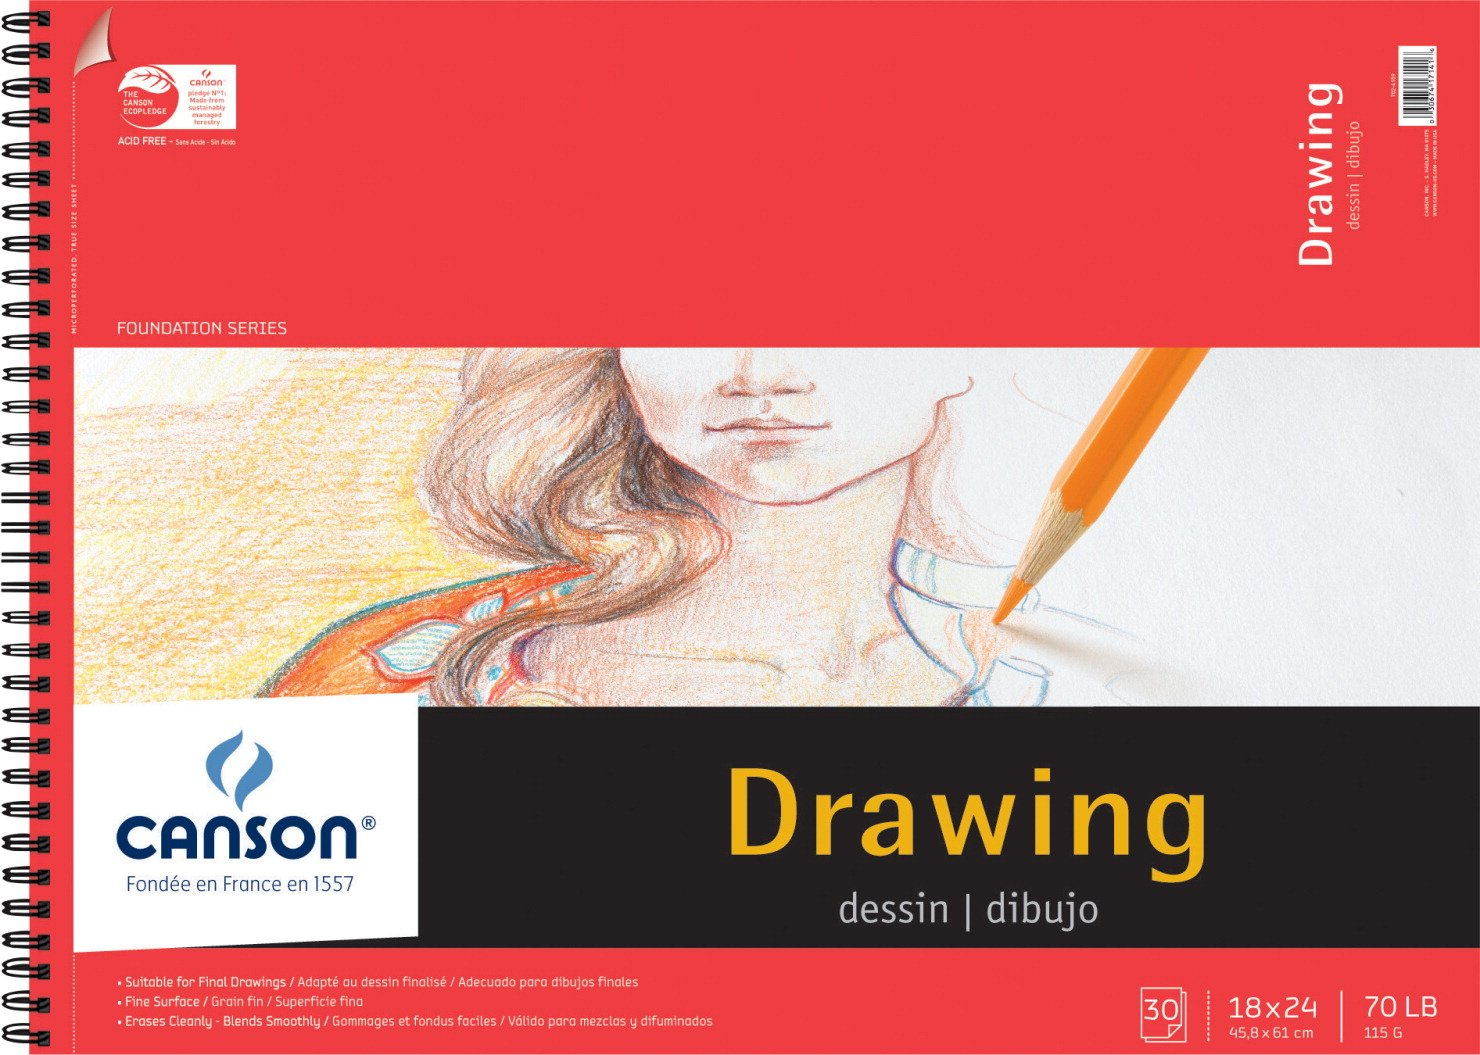 Canson 100510981 Foundation Drawing Pad, 30 Sheets, 18'' x 24'' Size, White